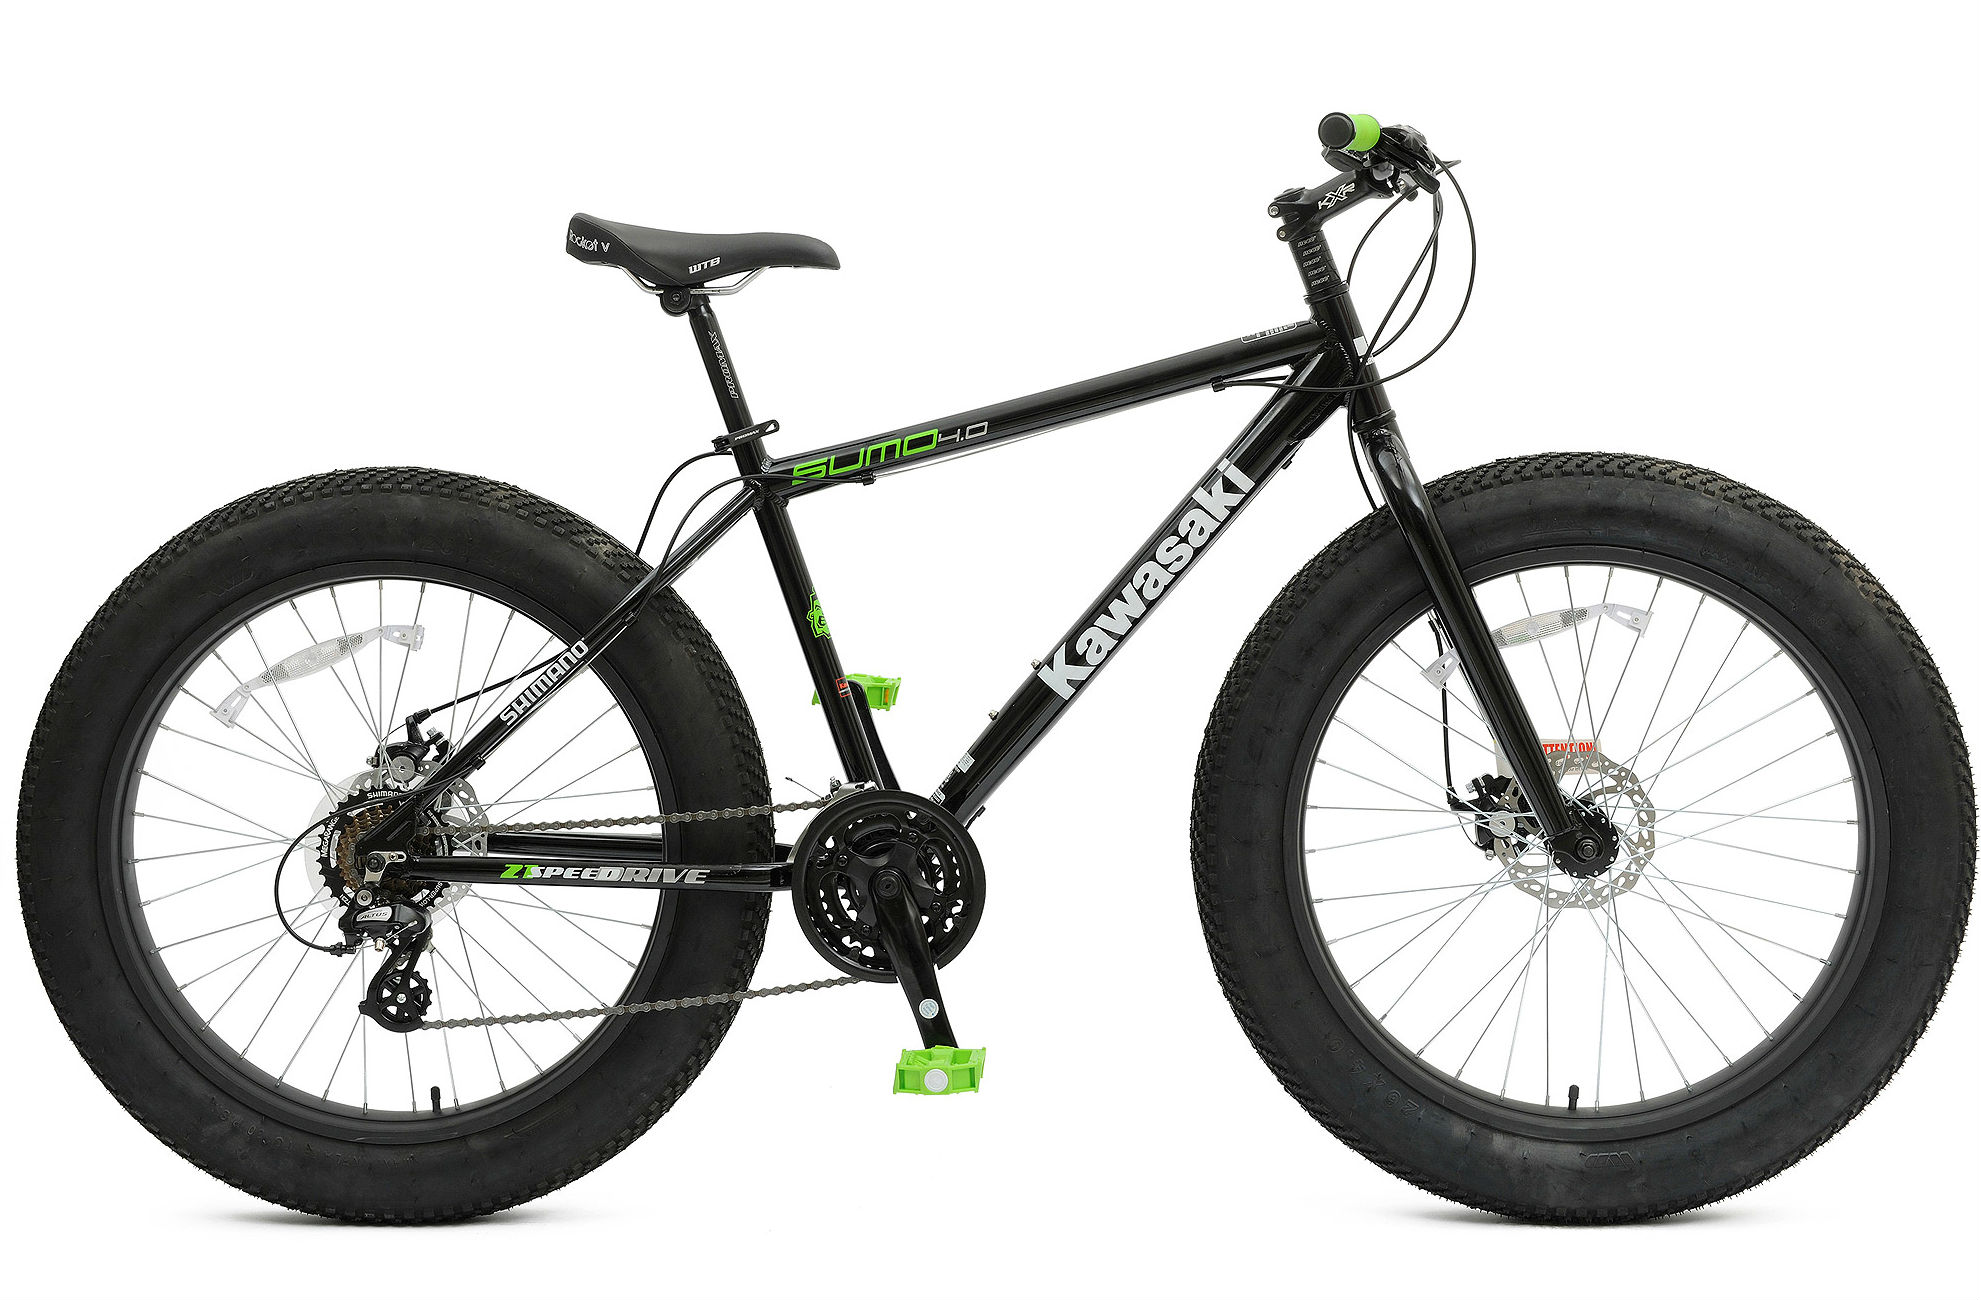 2nd Hand Mountain Bike Parts For Sale Philippines : Ash Cycles